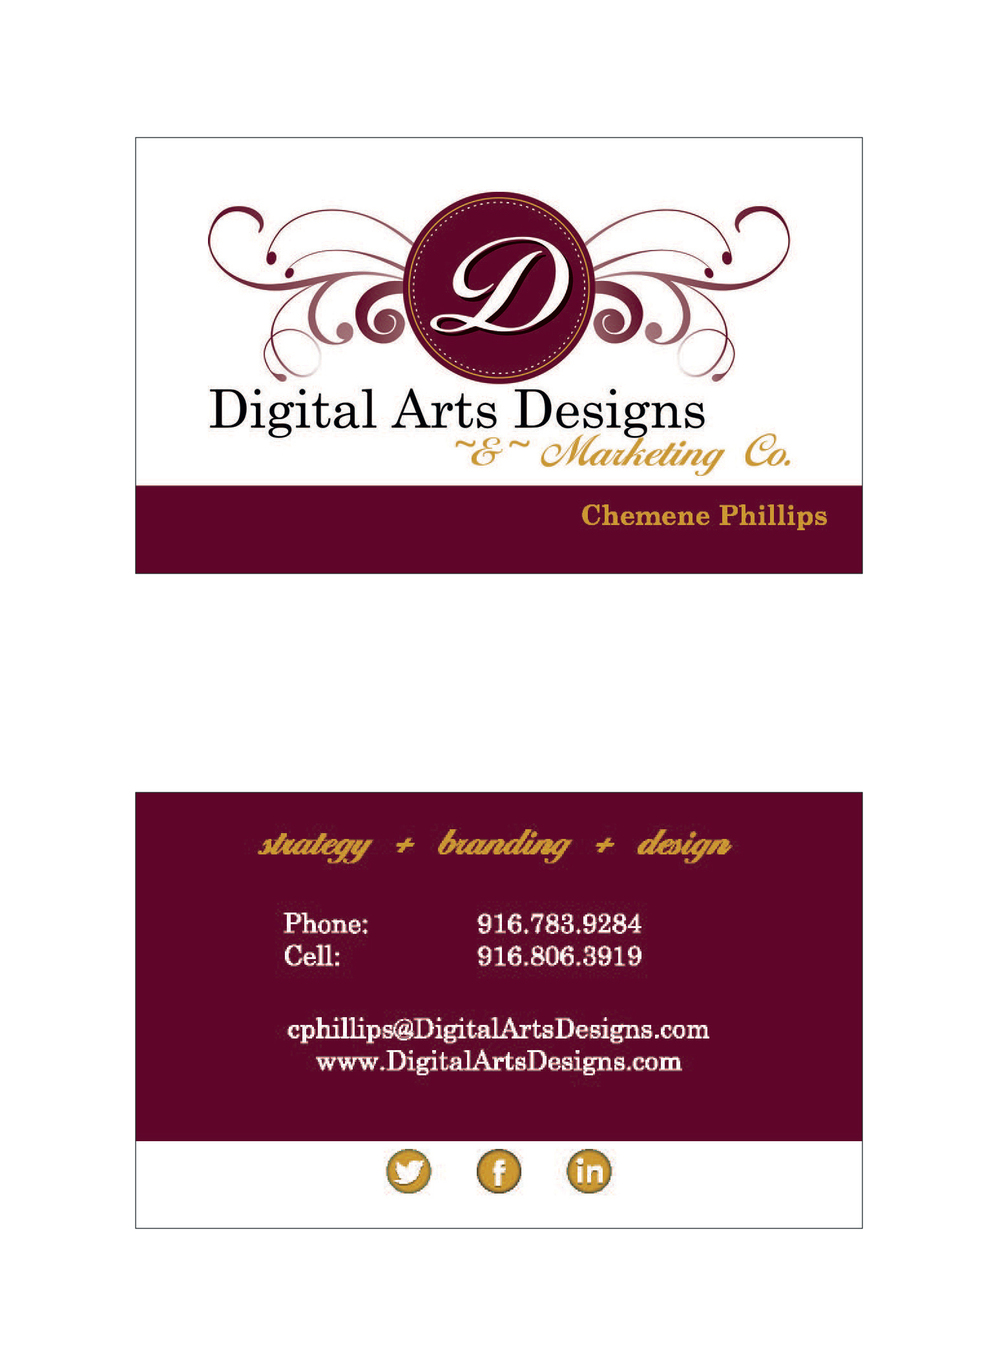 Dig-Arts-Bus-Cards_WEB.jpg